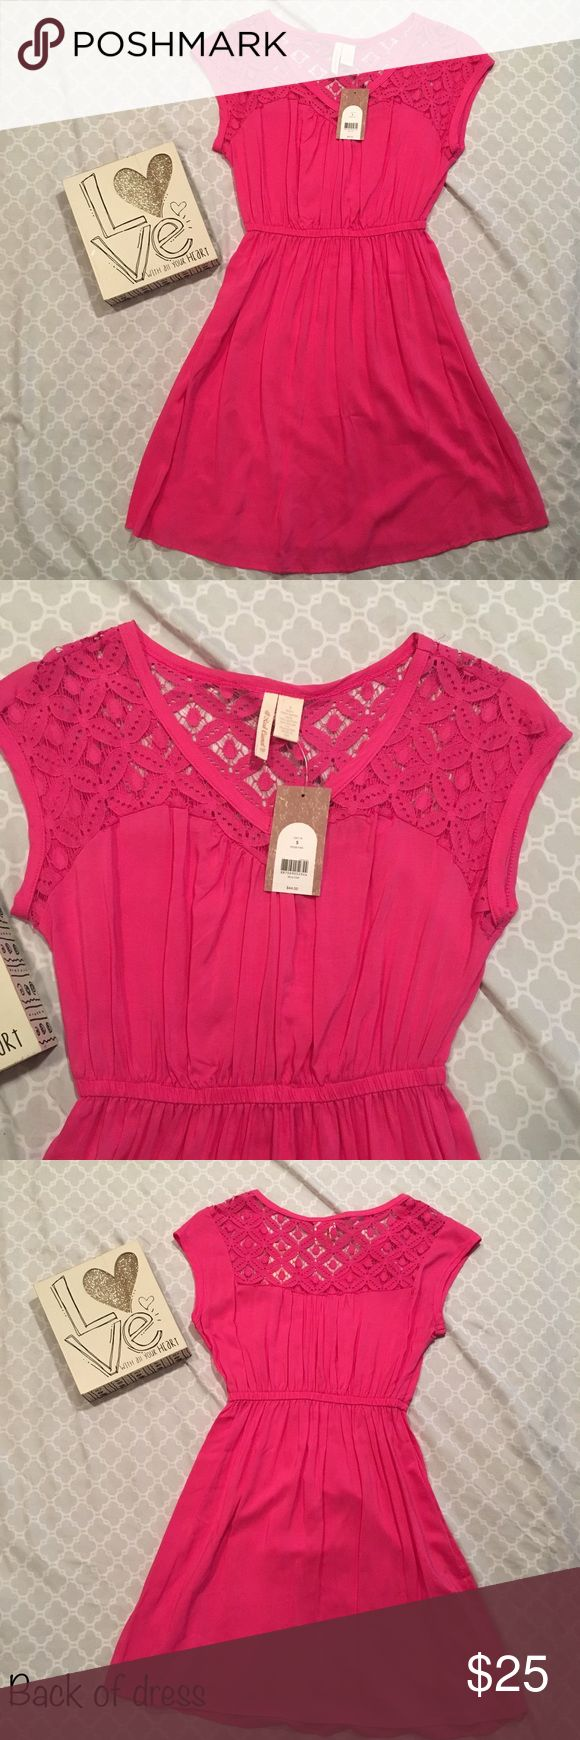 ✨NWT Pink Red Camel summer dress✨ NWT Women's size small pink Red camel summer dress. Beautiful and light weight. 💥All offers accepted. 💢Bundle with any 2 or more items to get discounted price and save on shipping💢 Red Camel Dresses